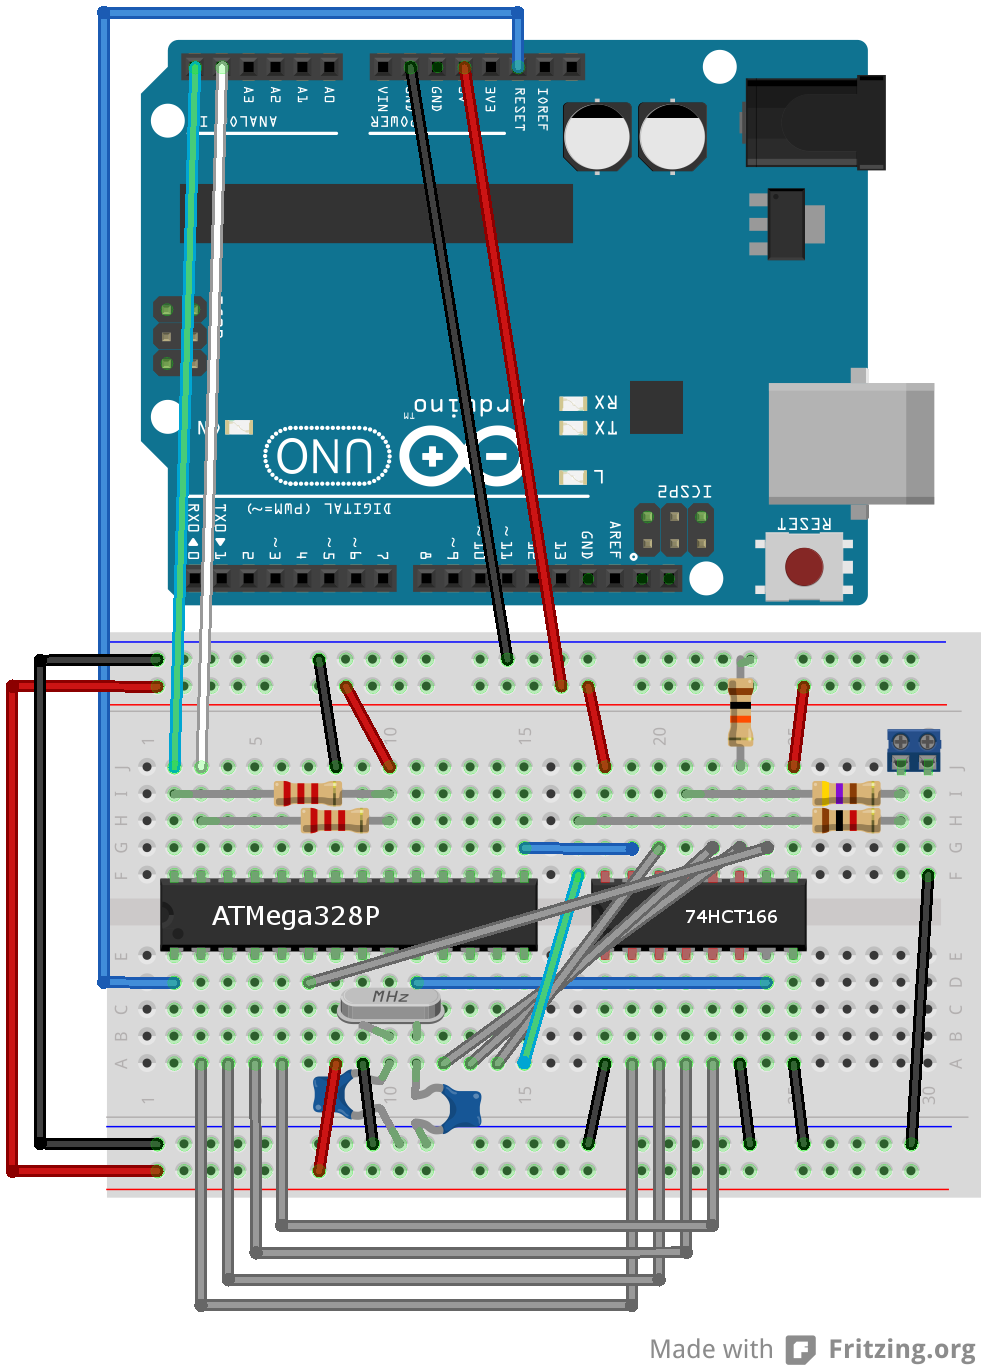 Figuring out which pins are being called out in - Arduino